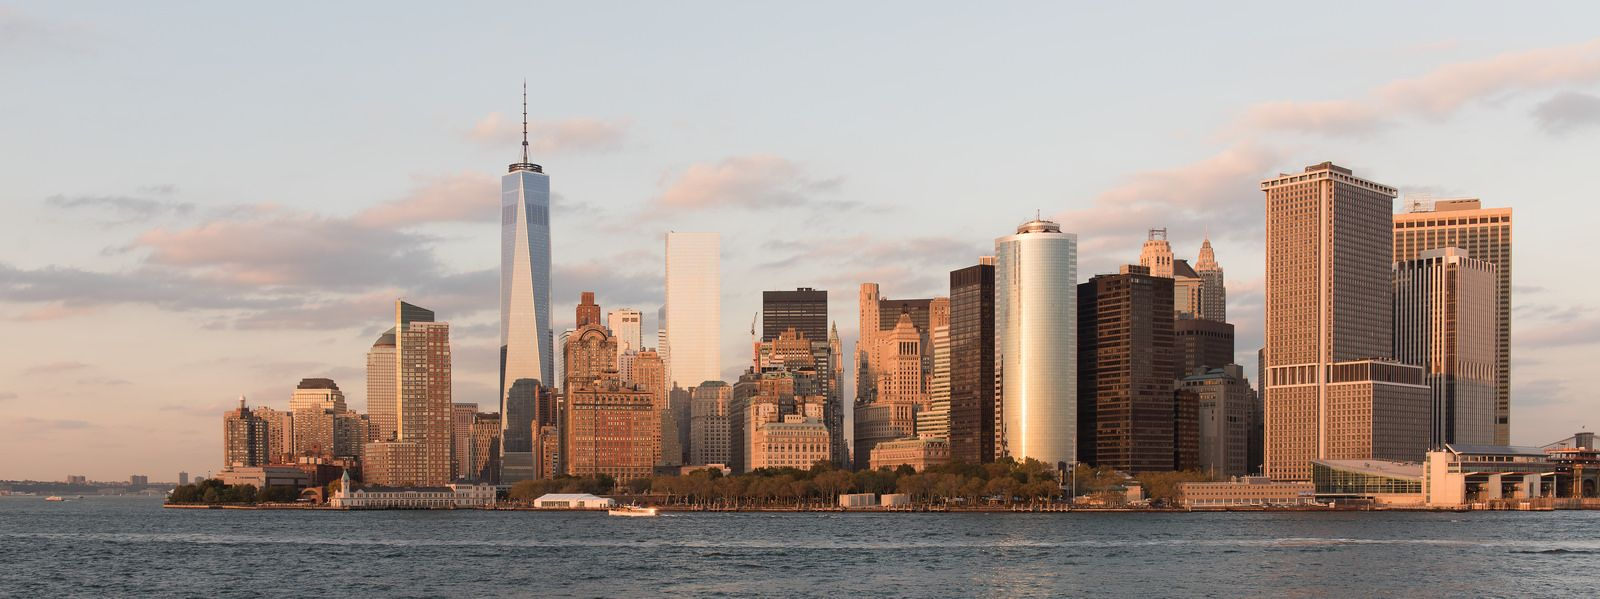 NEW YORK | One World Trade Center (1WTC) | 541m | 1776ft | 104 fl | T/O - Page 2818 - SkyscraperCity